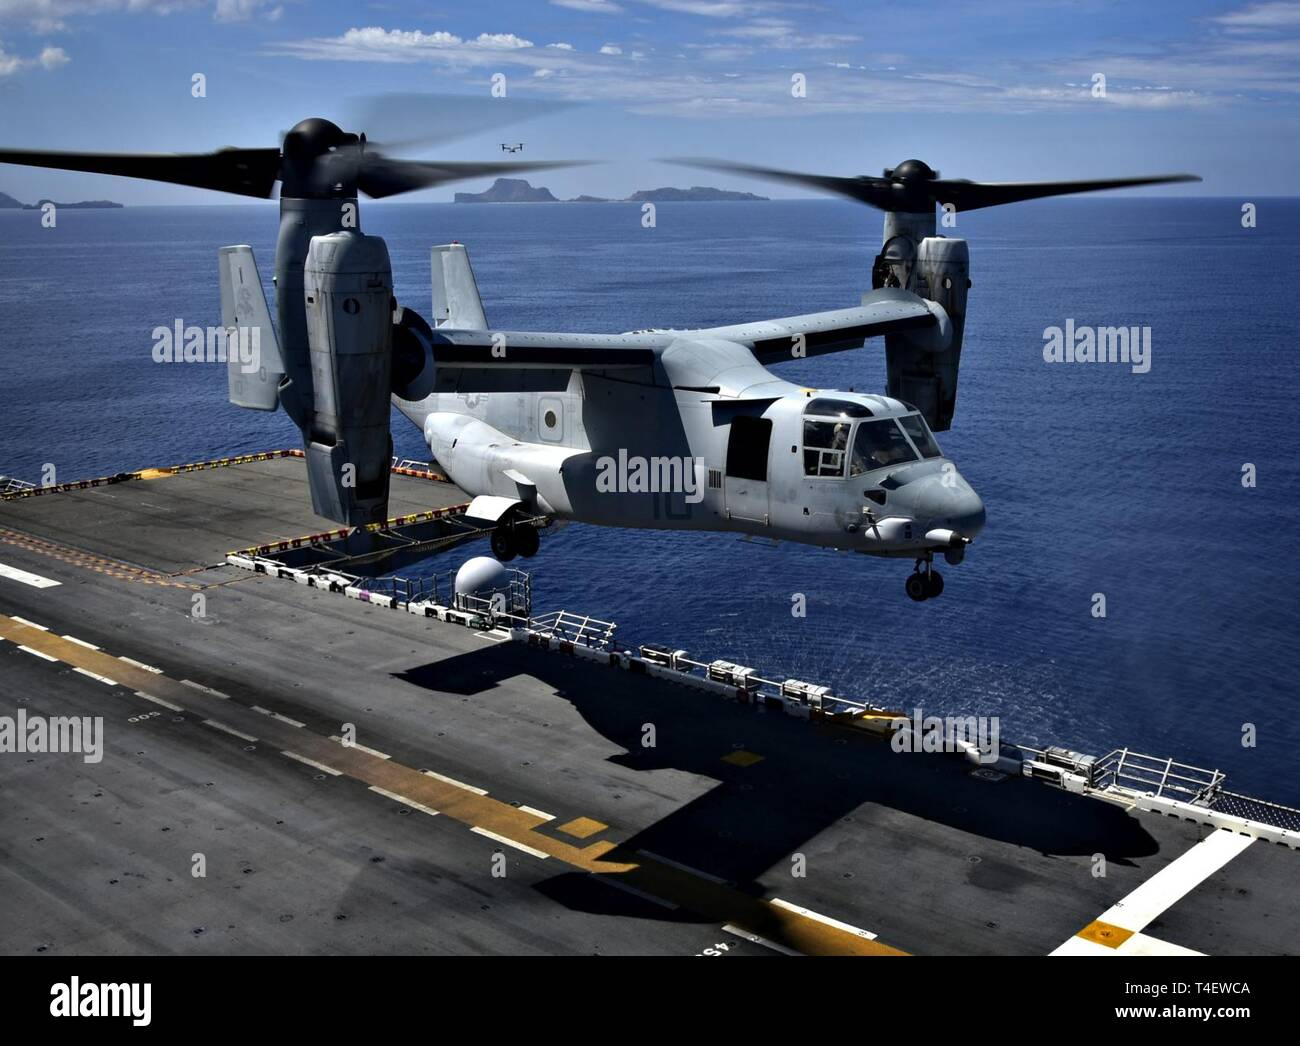 SOUTH CHINA SEA (April 3, 2019) An MV-22 Osprey, assigned to Marine Medium Tiltrotor Squadron (VMM) 268, lands aboard the amphibious assault ship USS Wasp (LHD 1) during flight operations in support of Exercise Balikatan 2019. Exercise Balikatan, in its 35th iteration, is an annual U.S., Philippine military training exercise focused on a variety of missions, including humanitarian assistance and disaster relief, counter-terrorism, and other combined military operations. - Stock Image